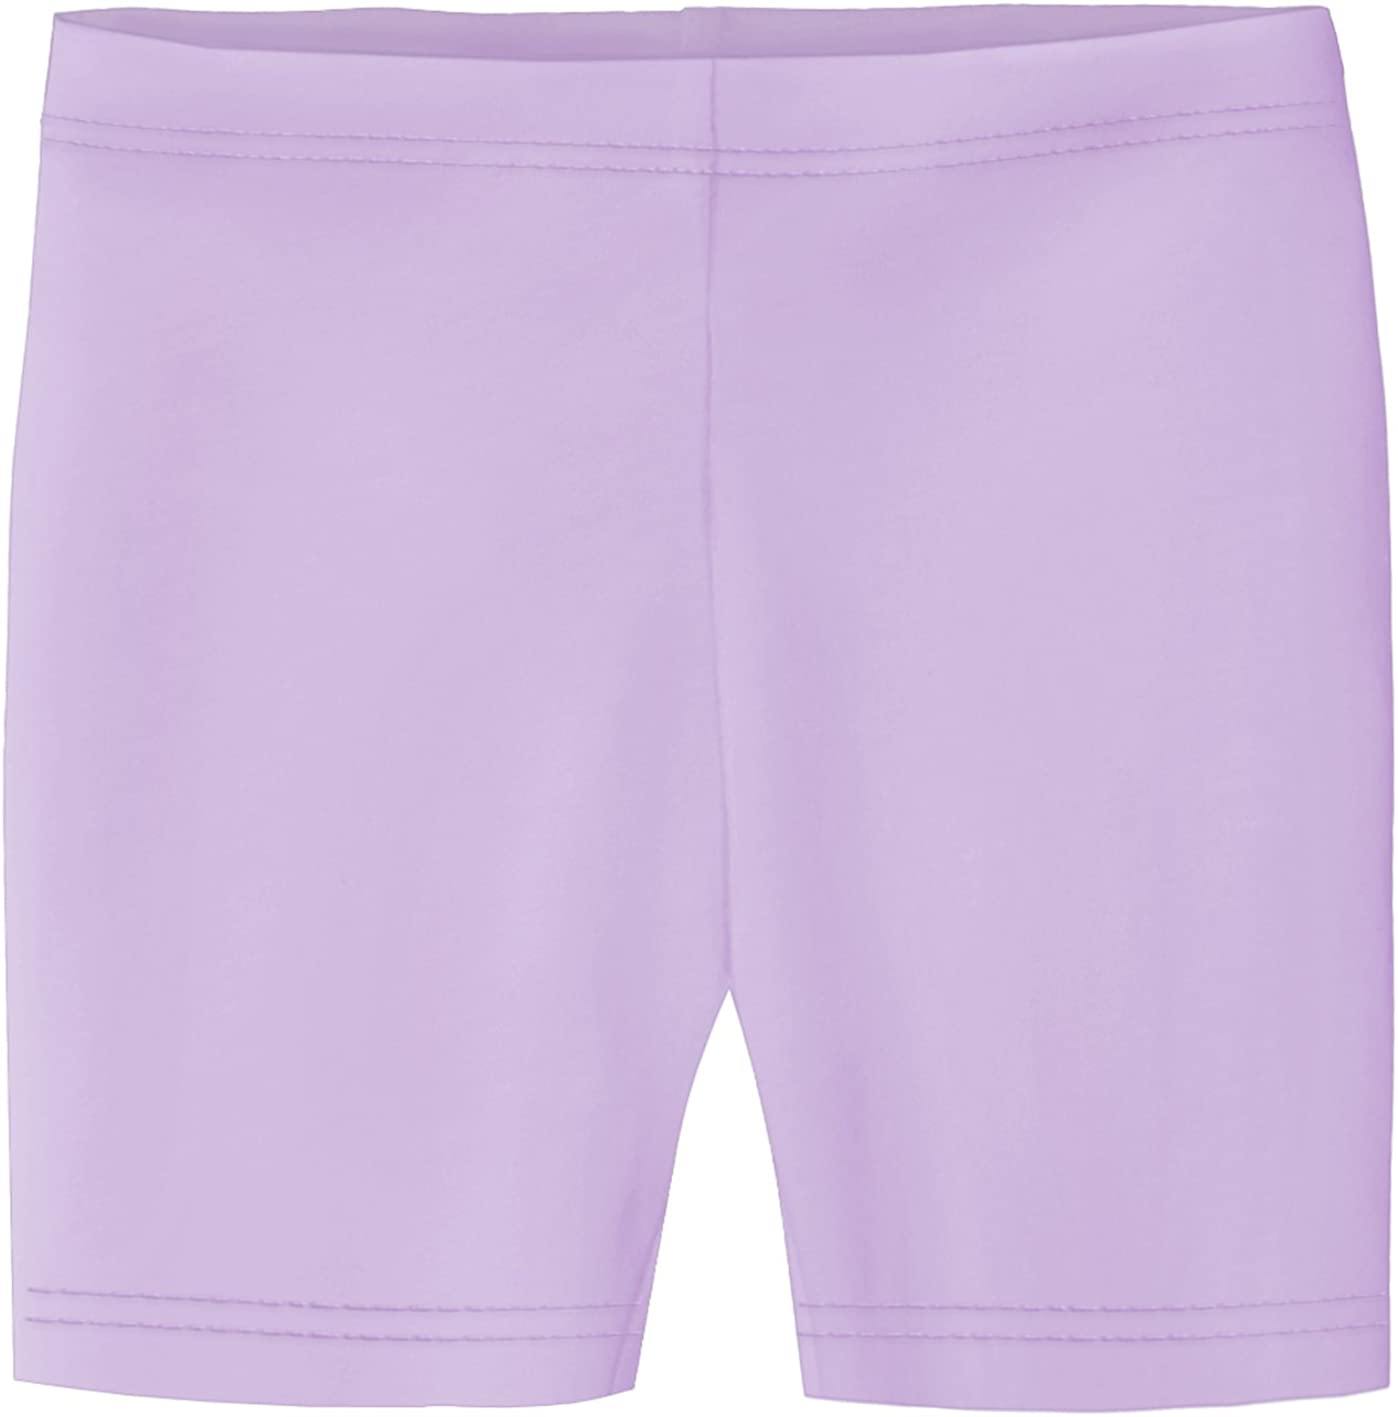 City Threads Little Girls Underwear Bike Shorts in All Cotton Perfect for SPD and Sensitive Skin Sports Dance School Uniform Lavender 2T